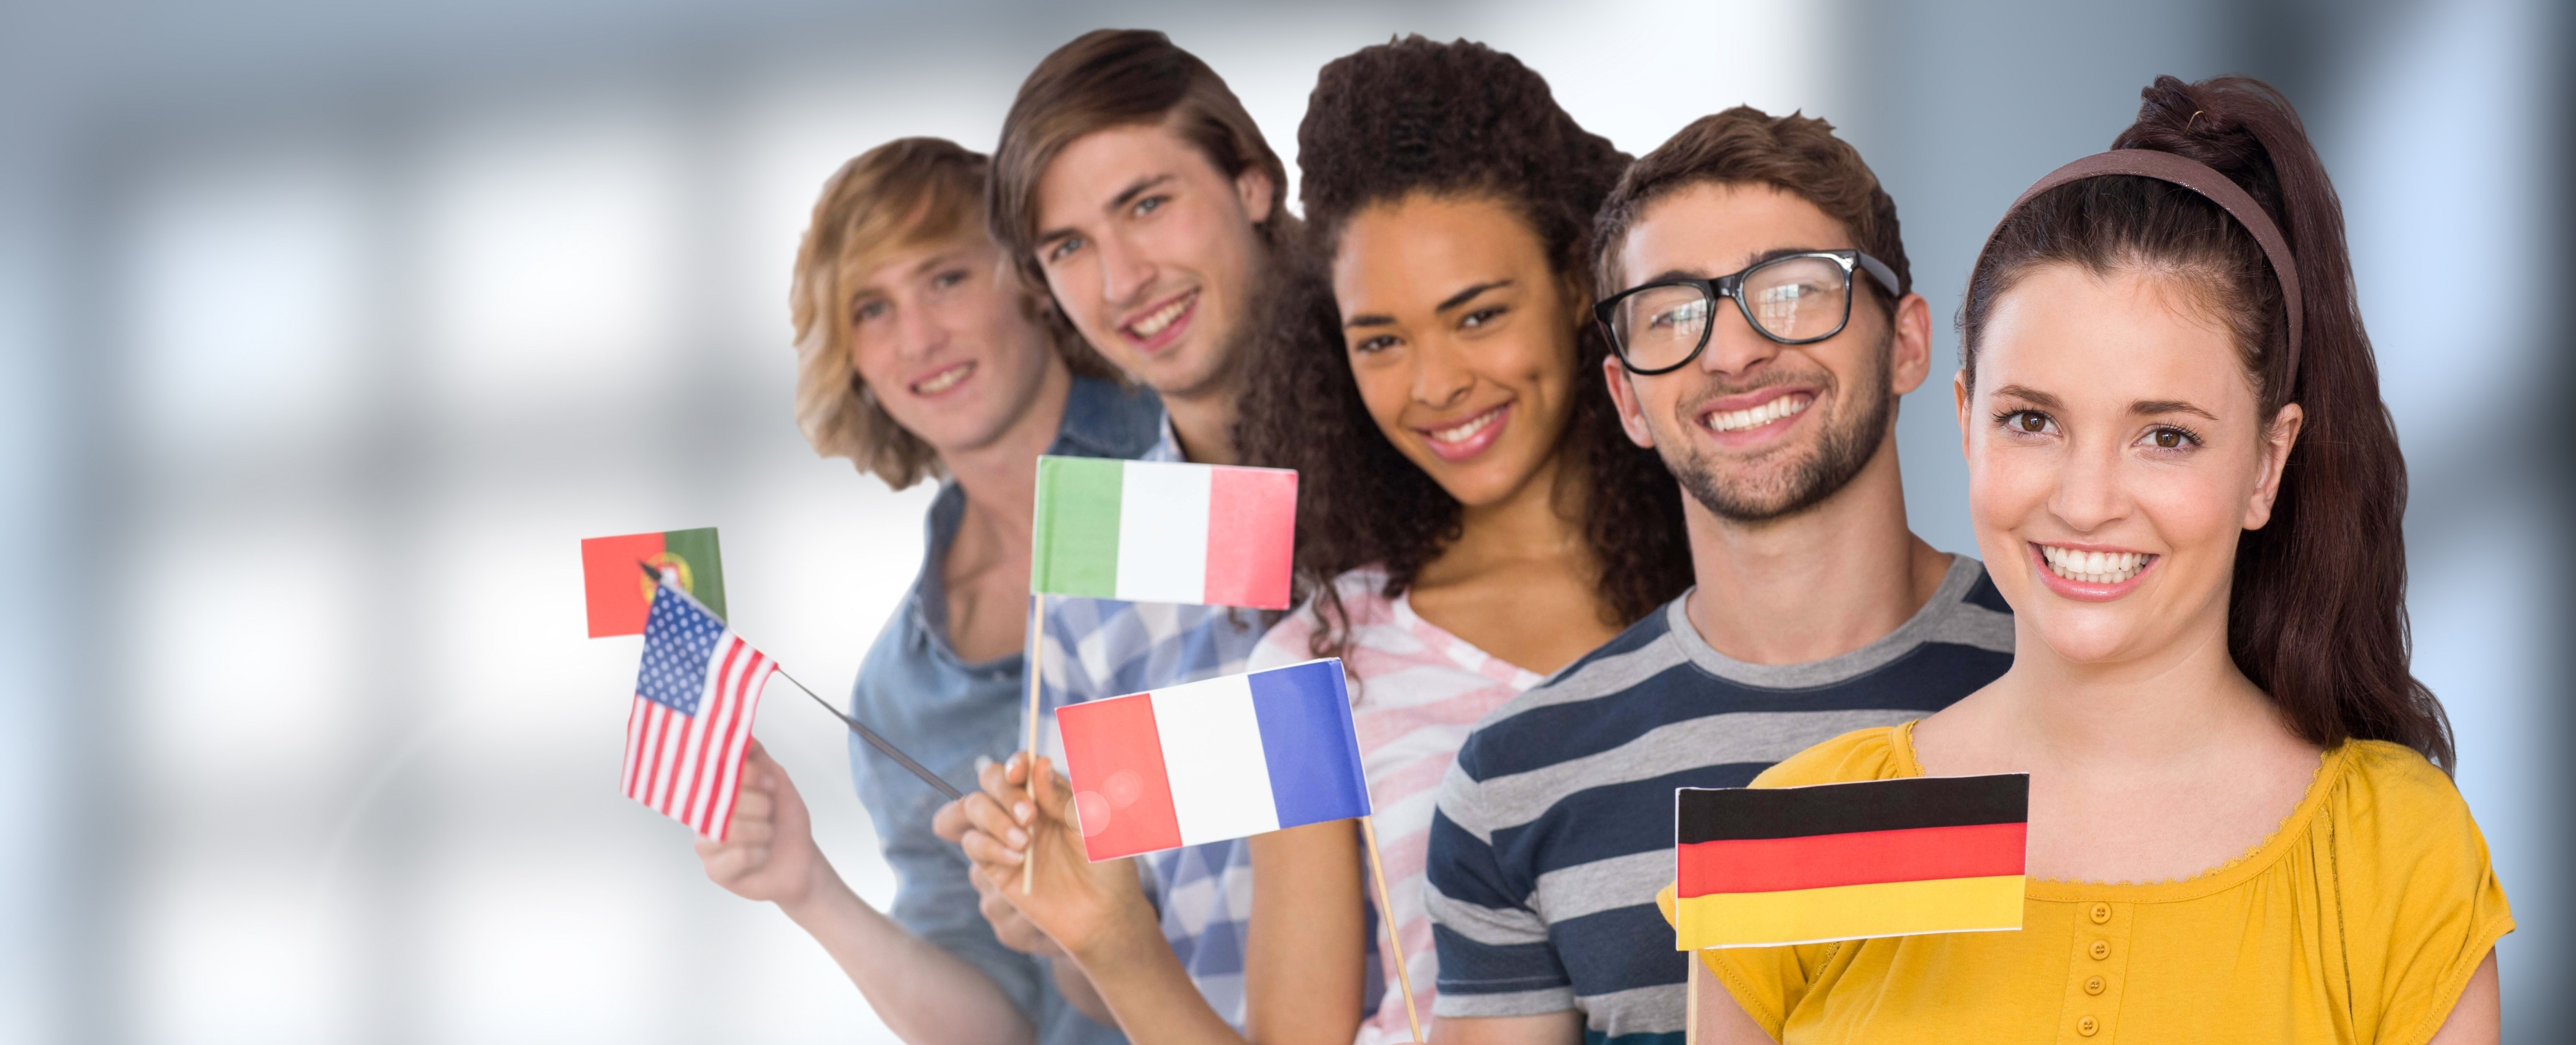 International students with their country flags.